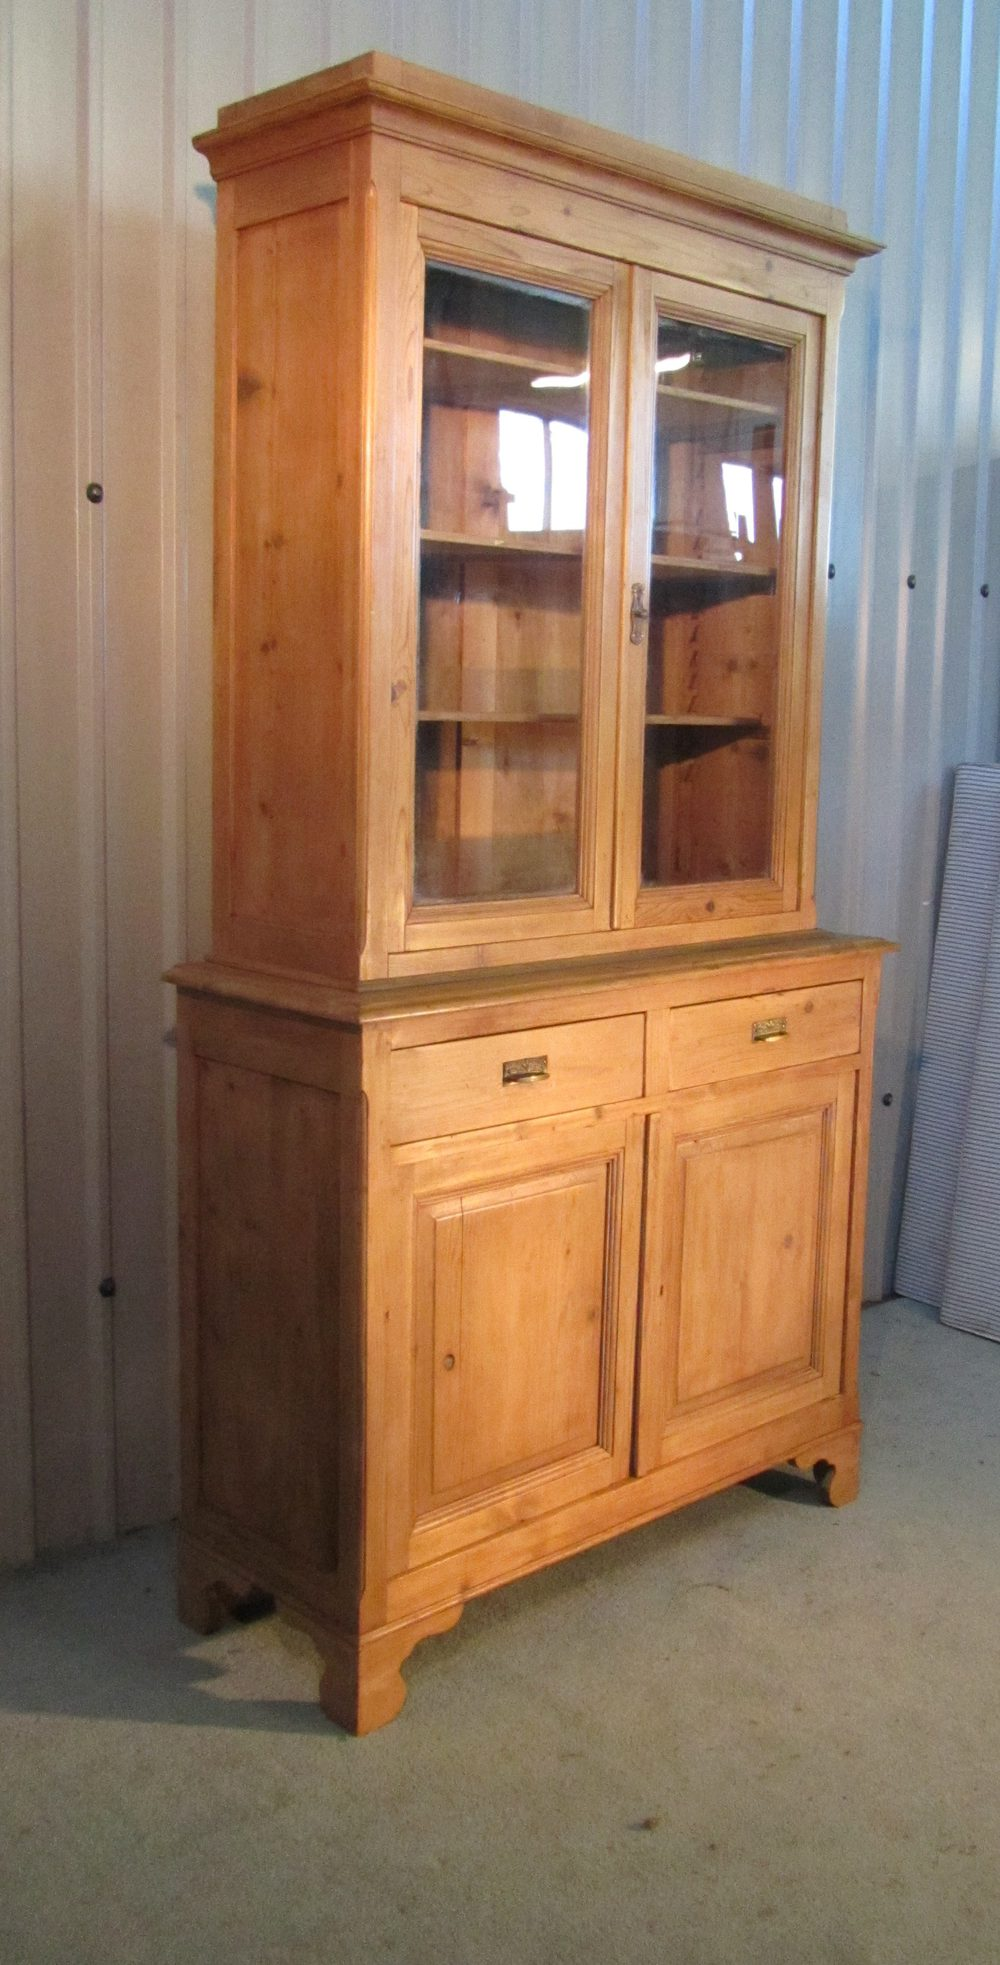 A Tall French Pine Bookcase - Antiques Atlas